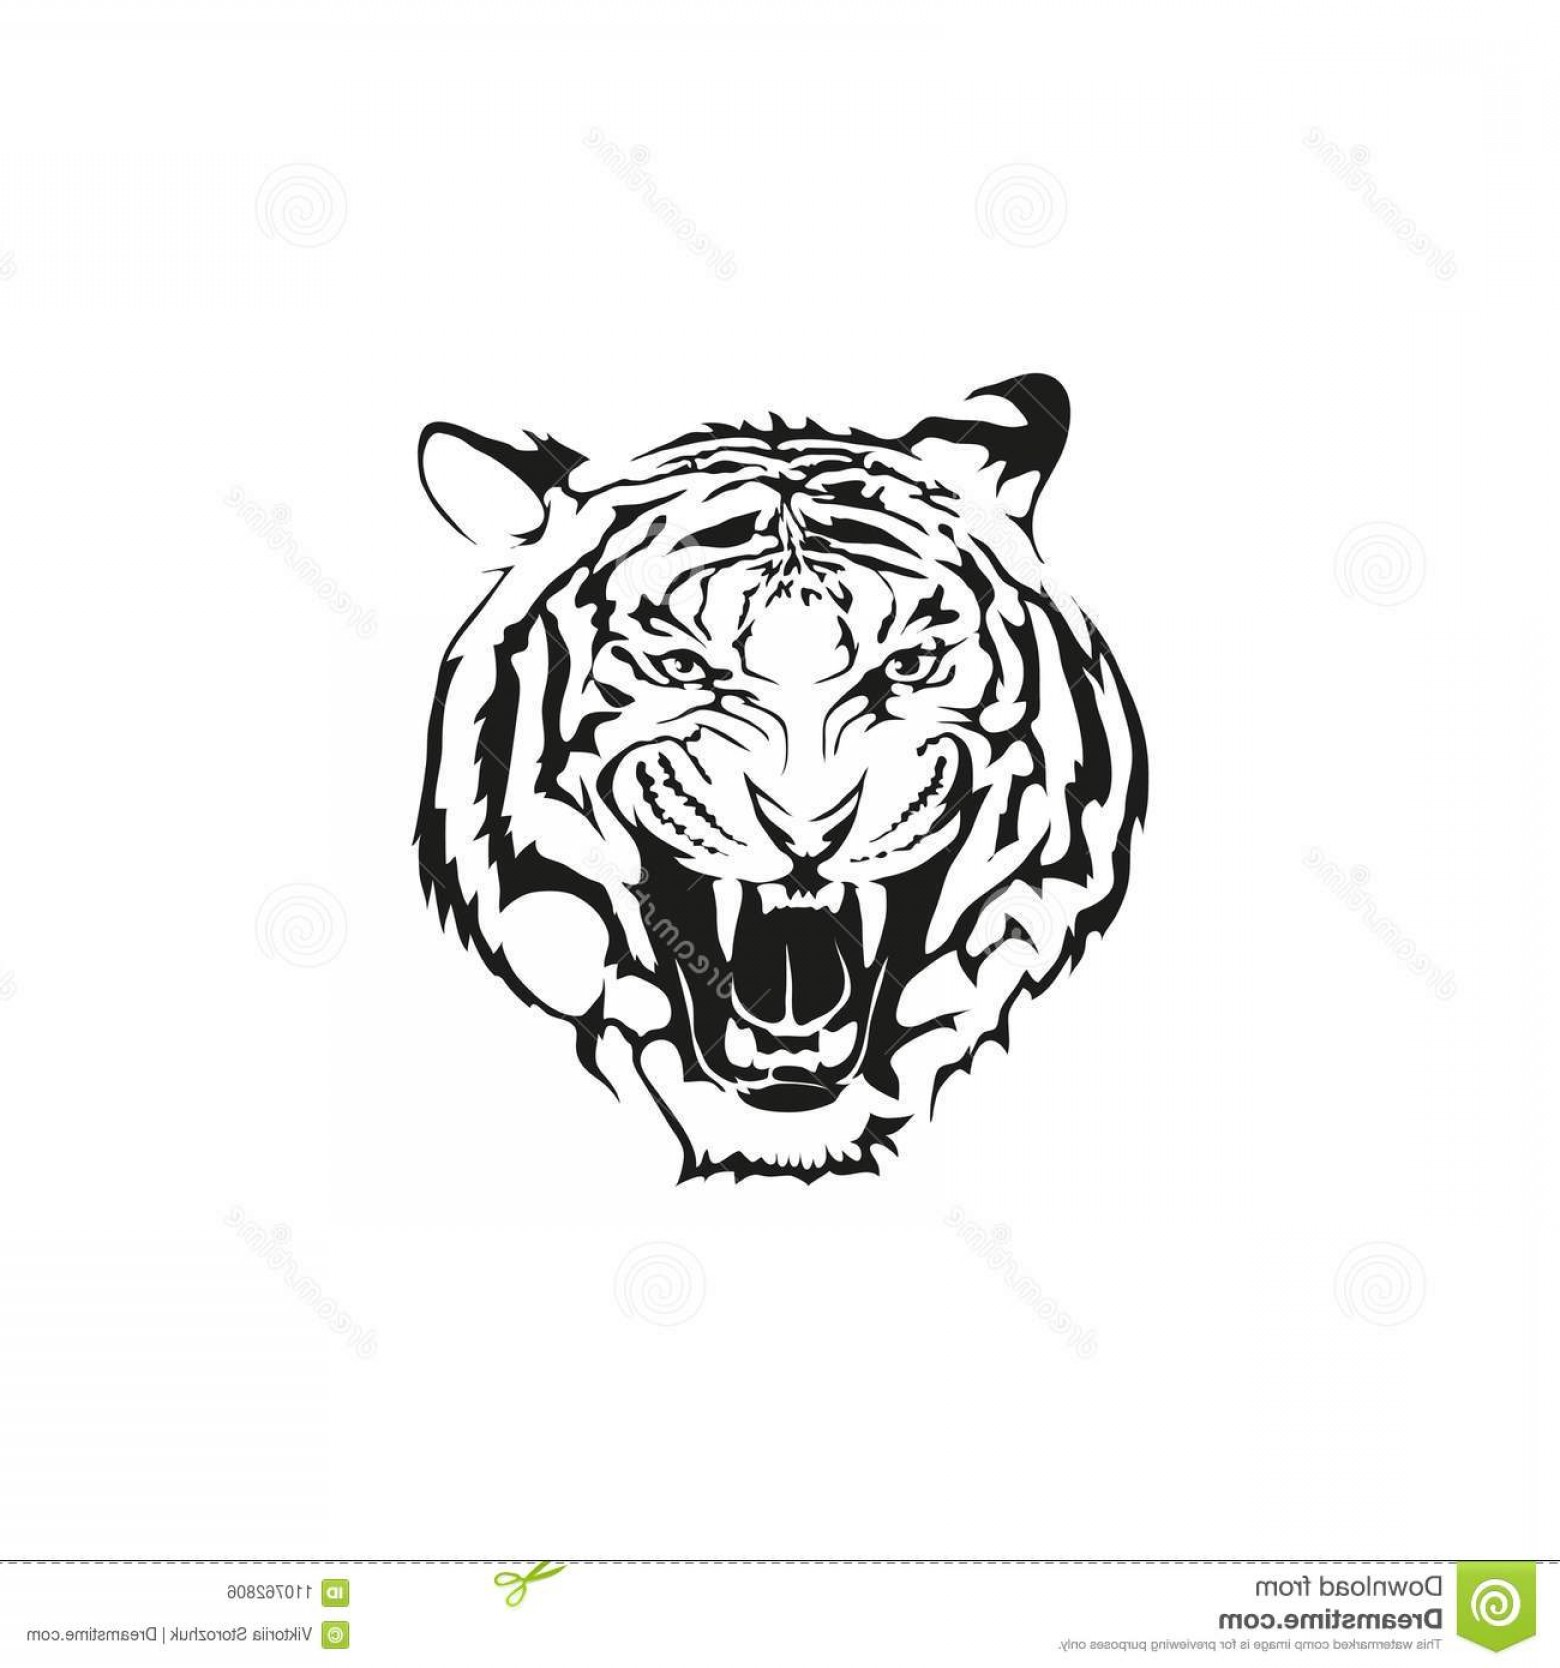 Missouri Tigers Logo Vector Black And White: Tiger Logo Emblem Realistic Image Isolated White Background Realistic Image Tiger Logo Emblem Image